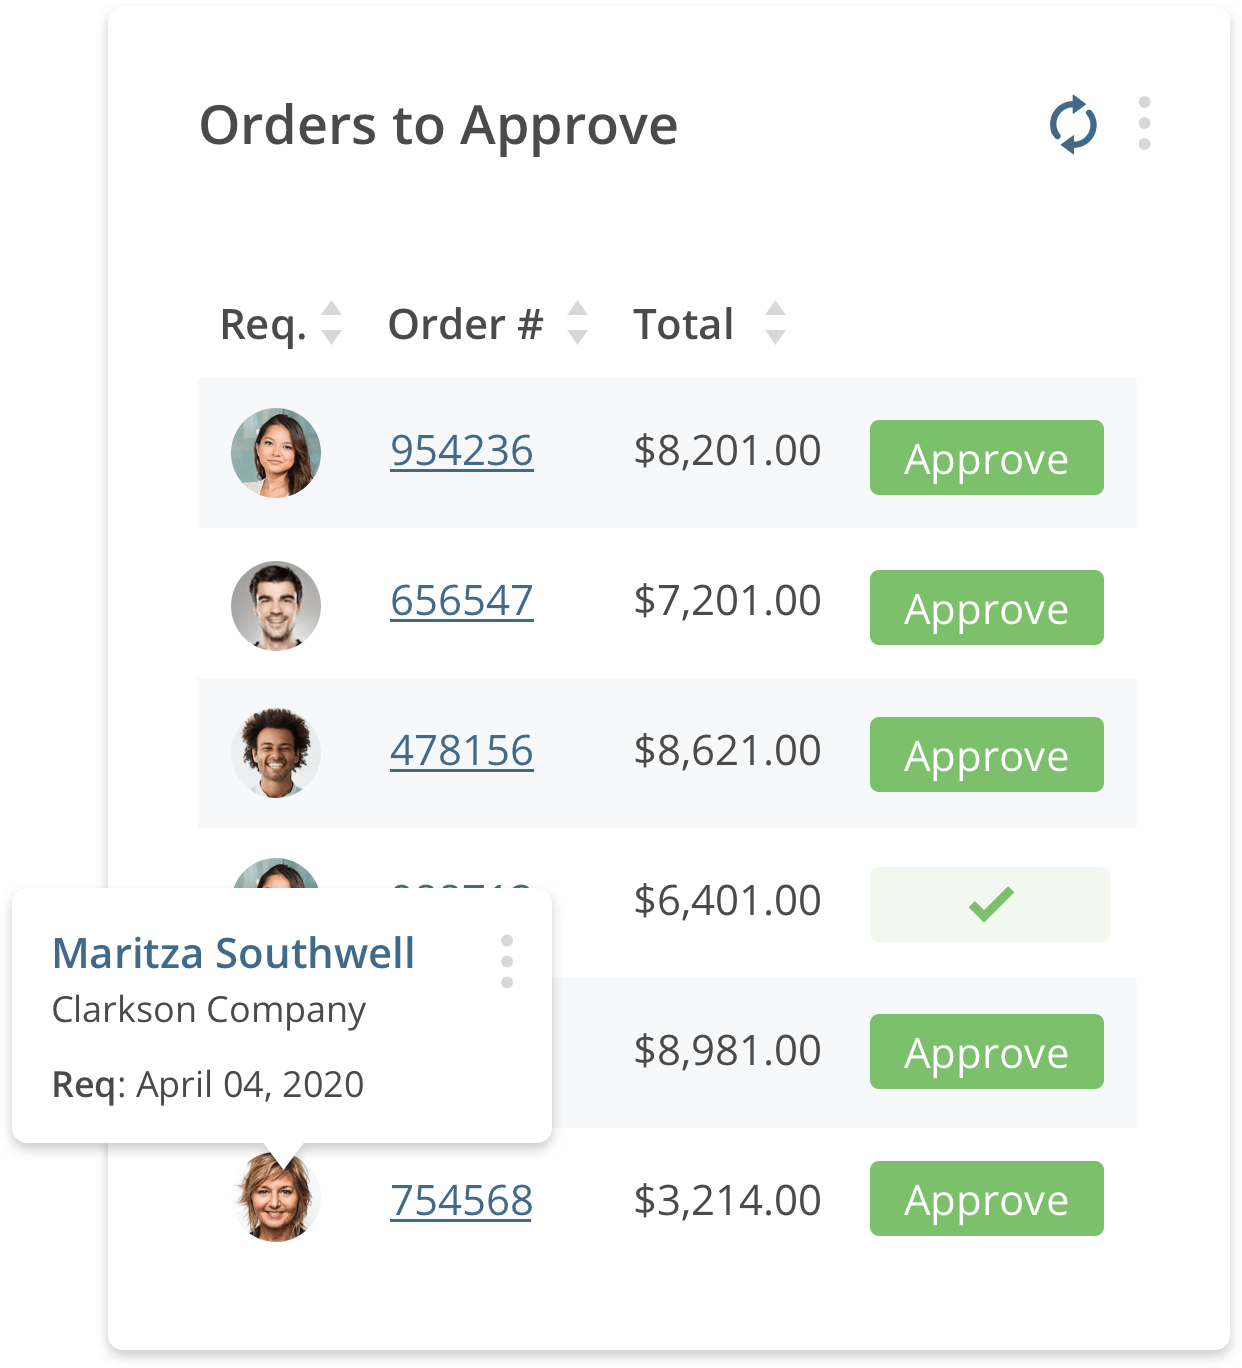 Orders to approve functionality